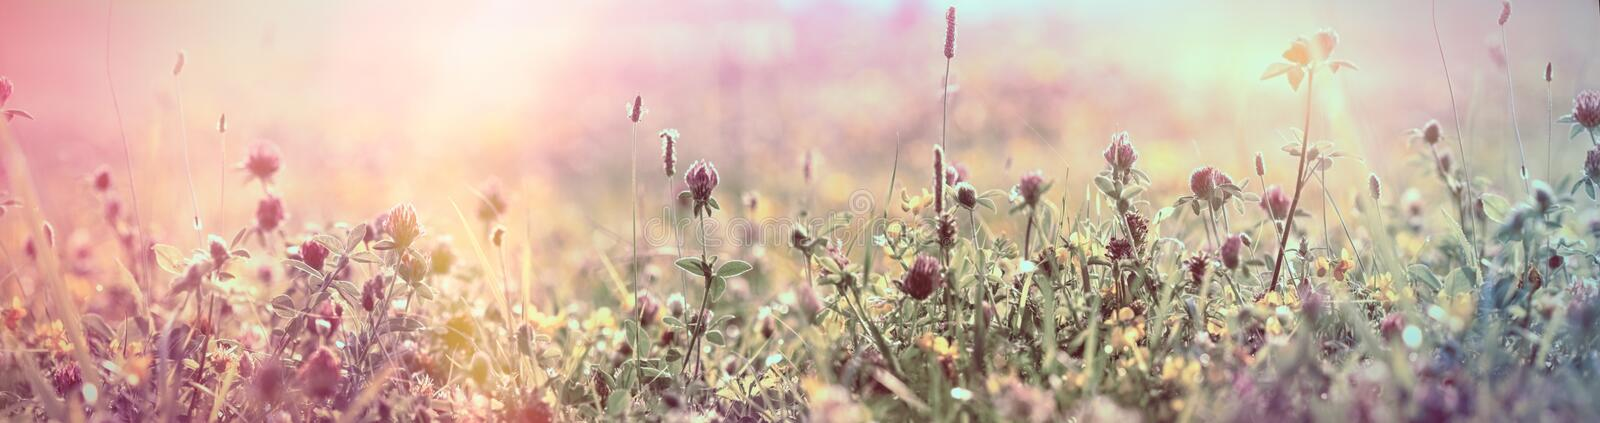 Selective and soft focus on flowering red clover, beautiful meadow stock images